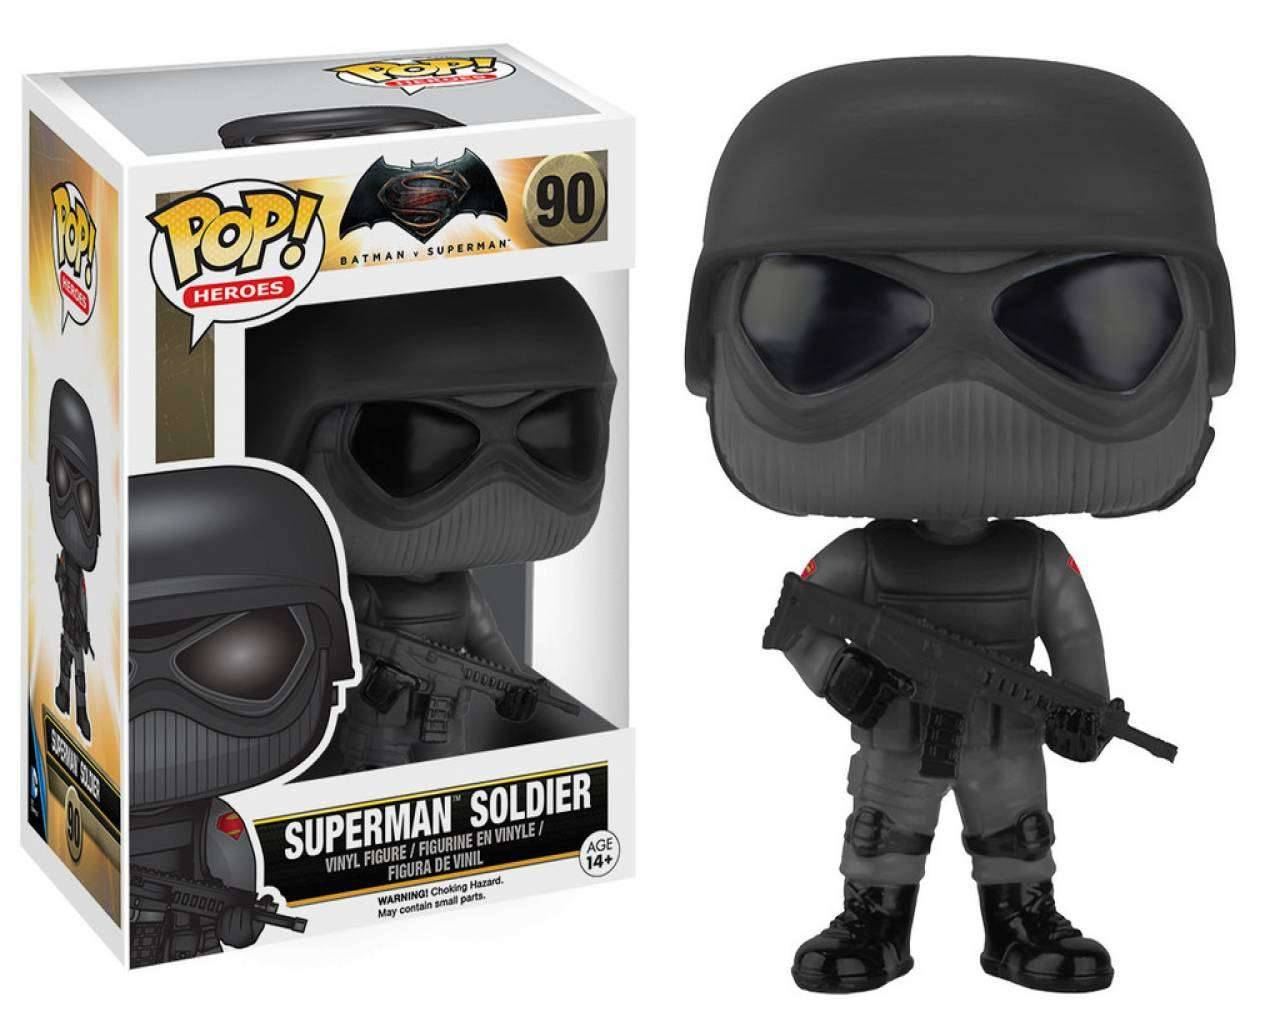 Superman Soldier Pop! Vinyl